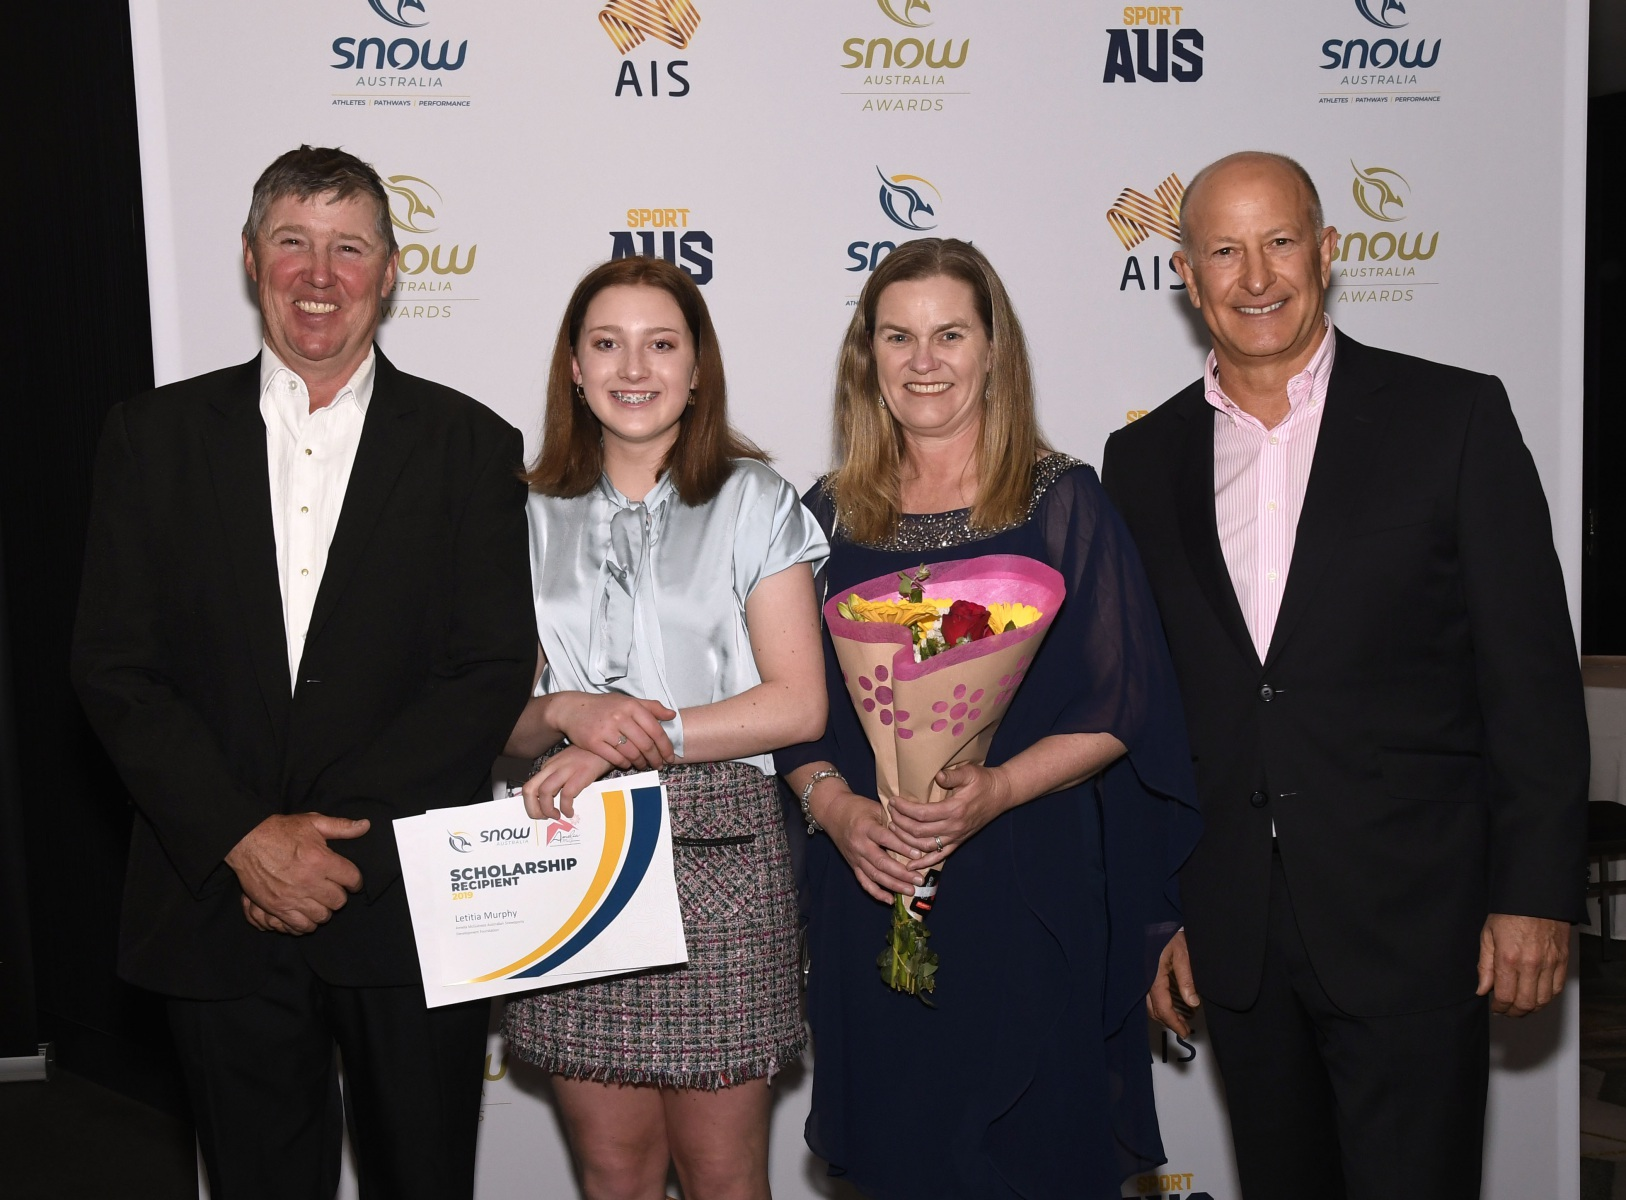 Amelia McGuiness Australian Snowsports Development Foundation scholarship awards at QT Canberra, Thursday November 7, 2019. Photo Steve Cuff.